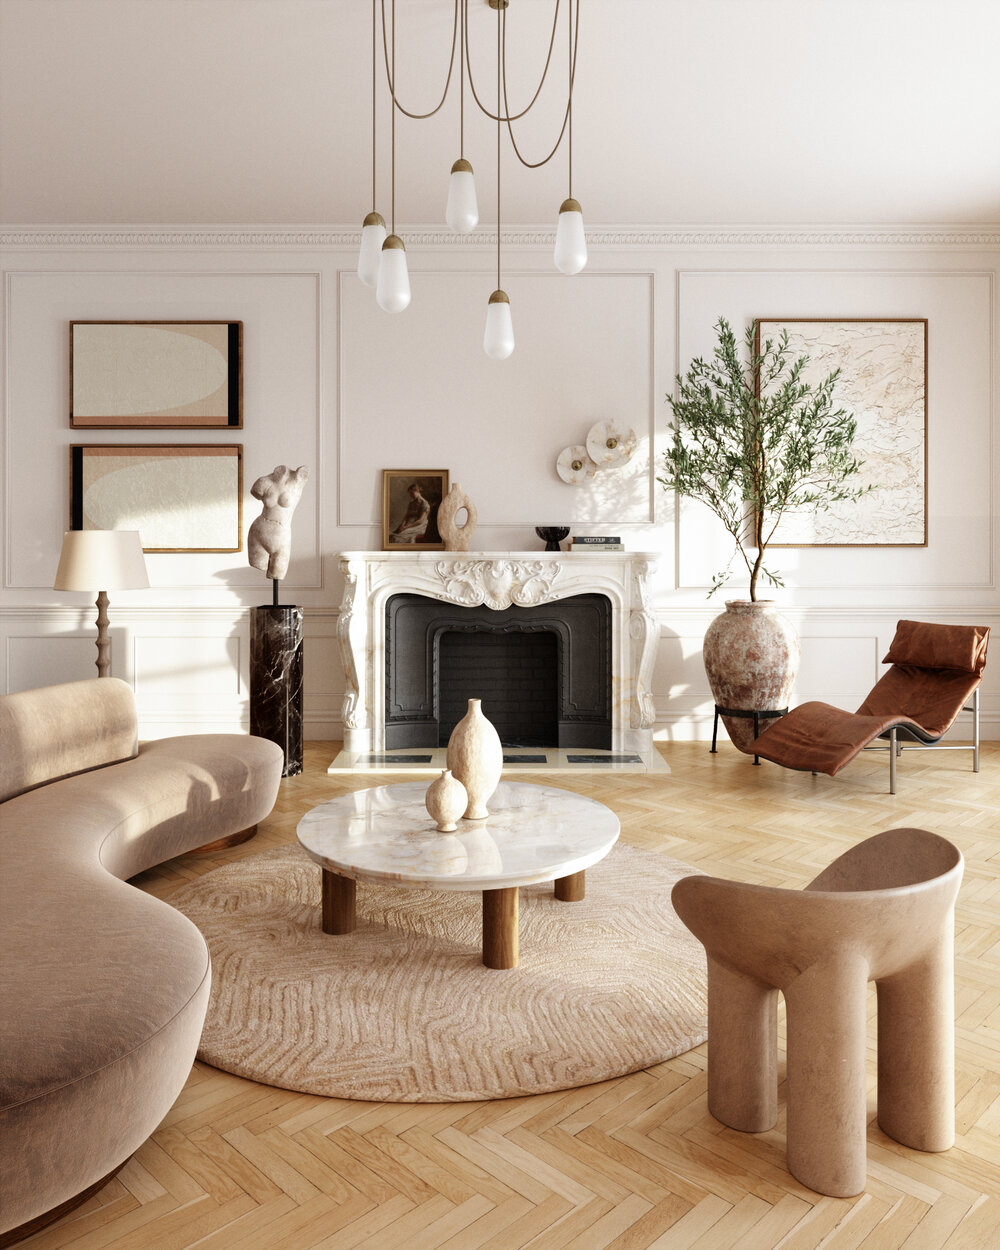 Neutral toned living room with organic shapes, colours and textures